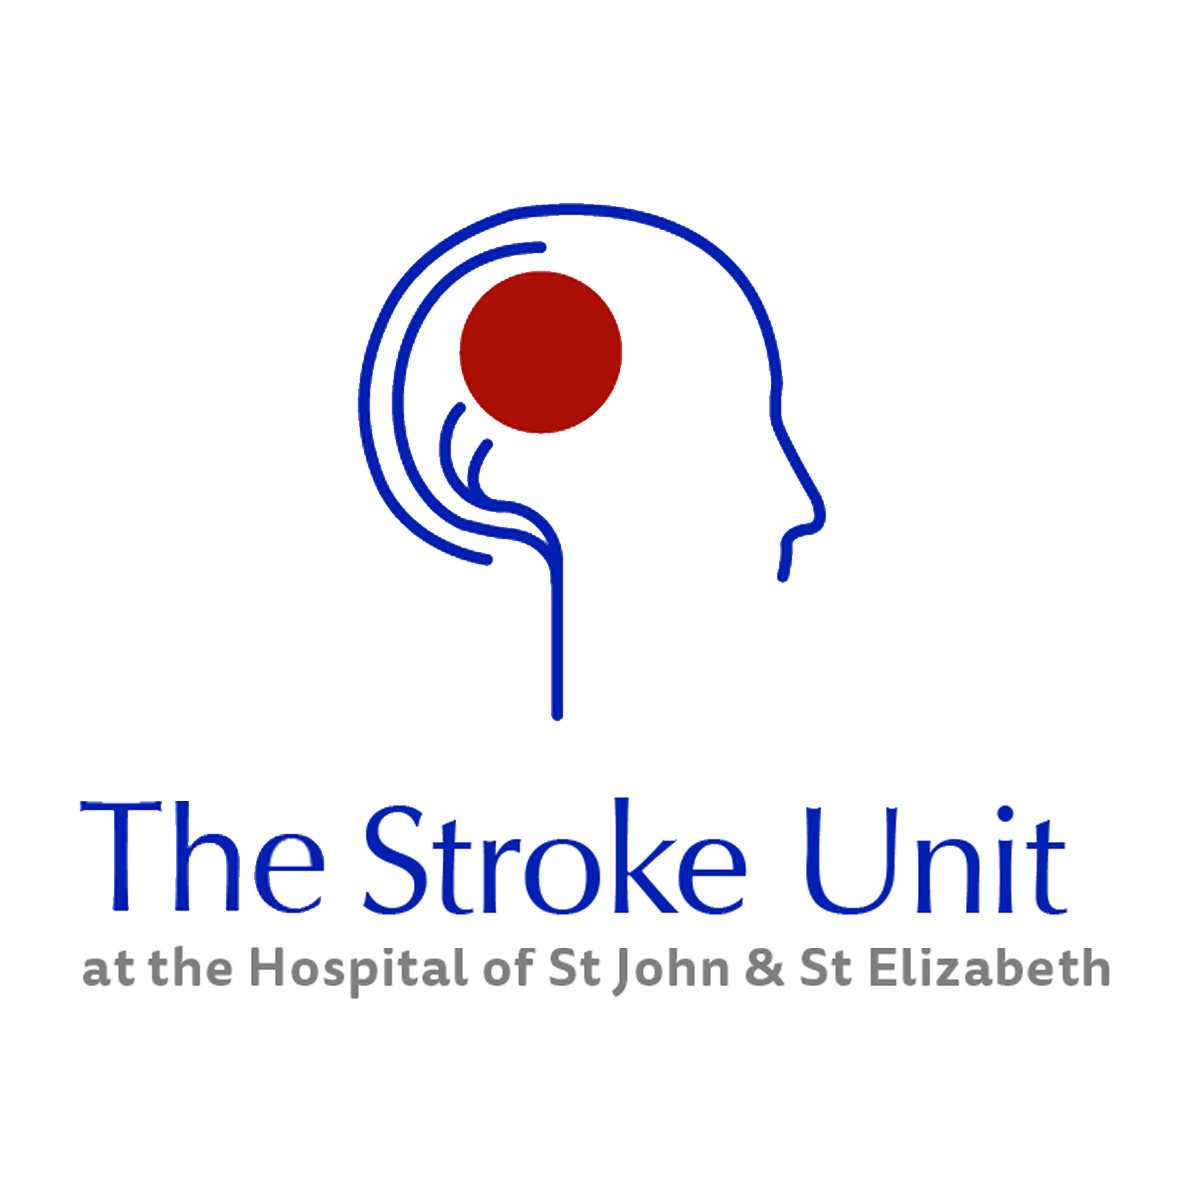 The Stroke Unit